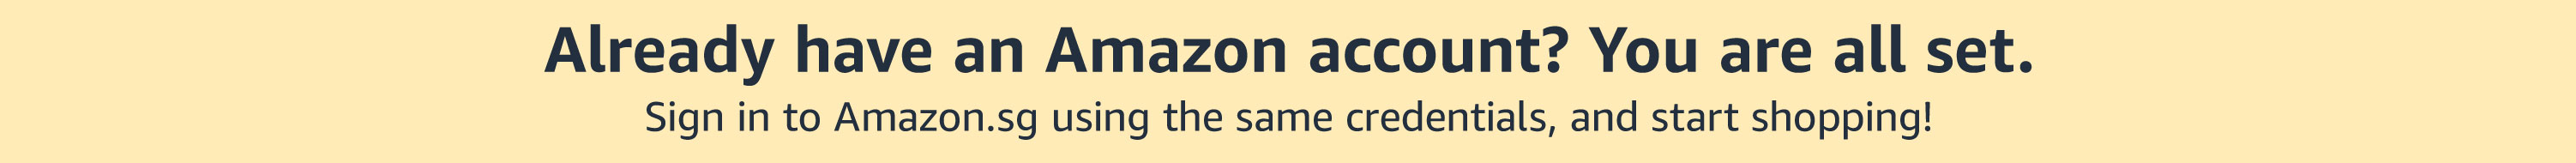 Already have an Amazon account? You are all set. Sign in to Amazon.sg using the same credentials, and start shopping!